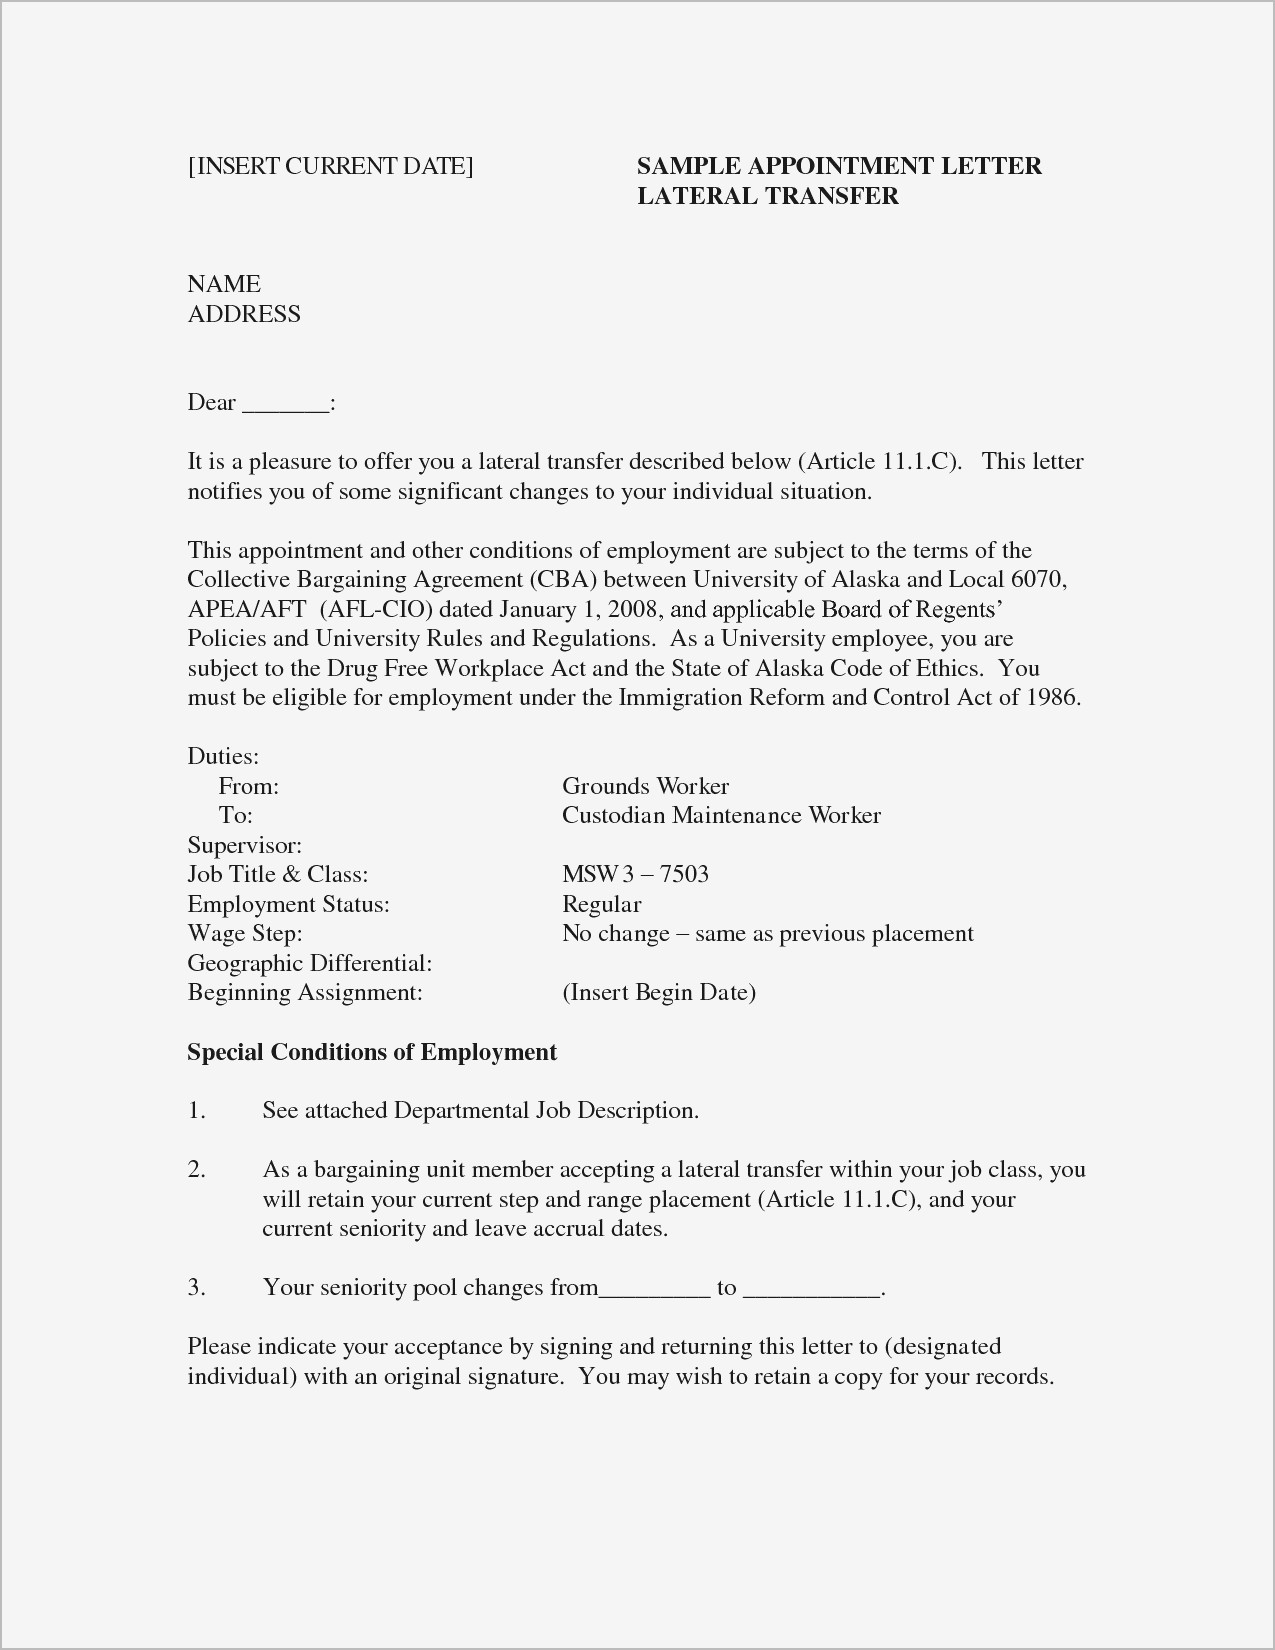 Independent Contractor Offer Letter Template - Free Business Documents Templates Download Save Free Cover Letter